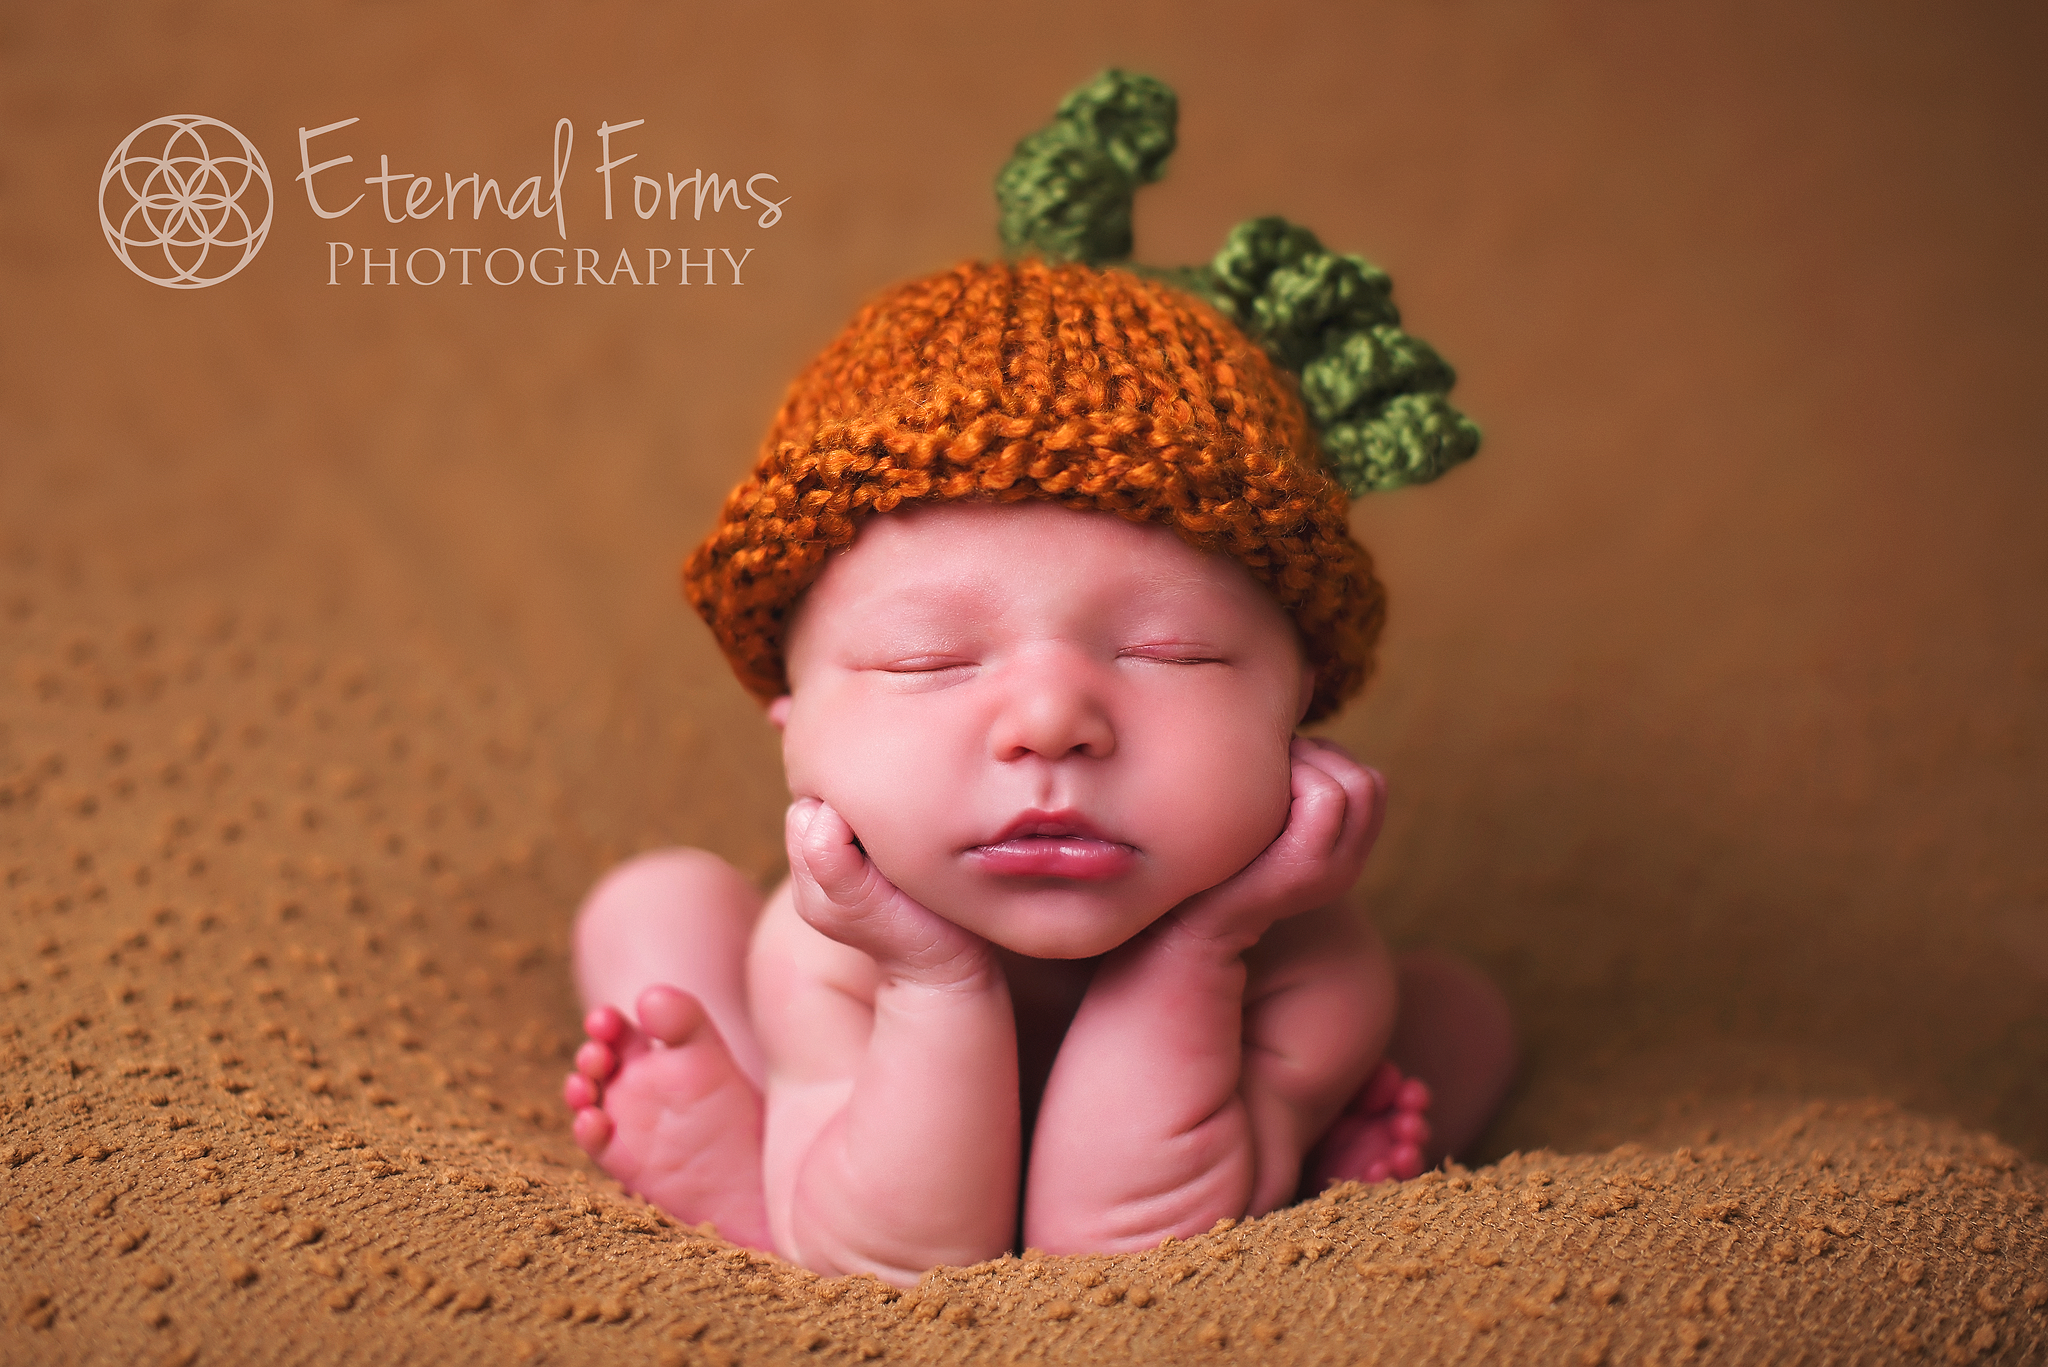 in anticipation for fall, we put a little pumpkin hat on our little nephew